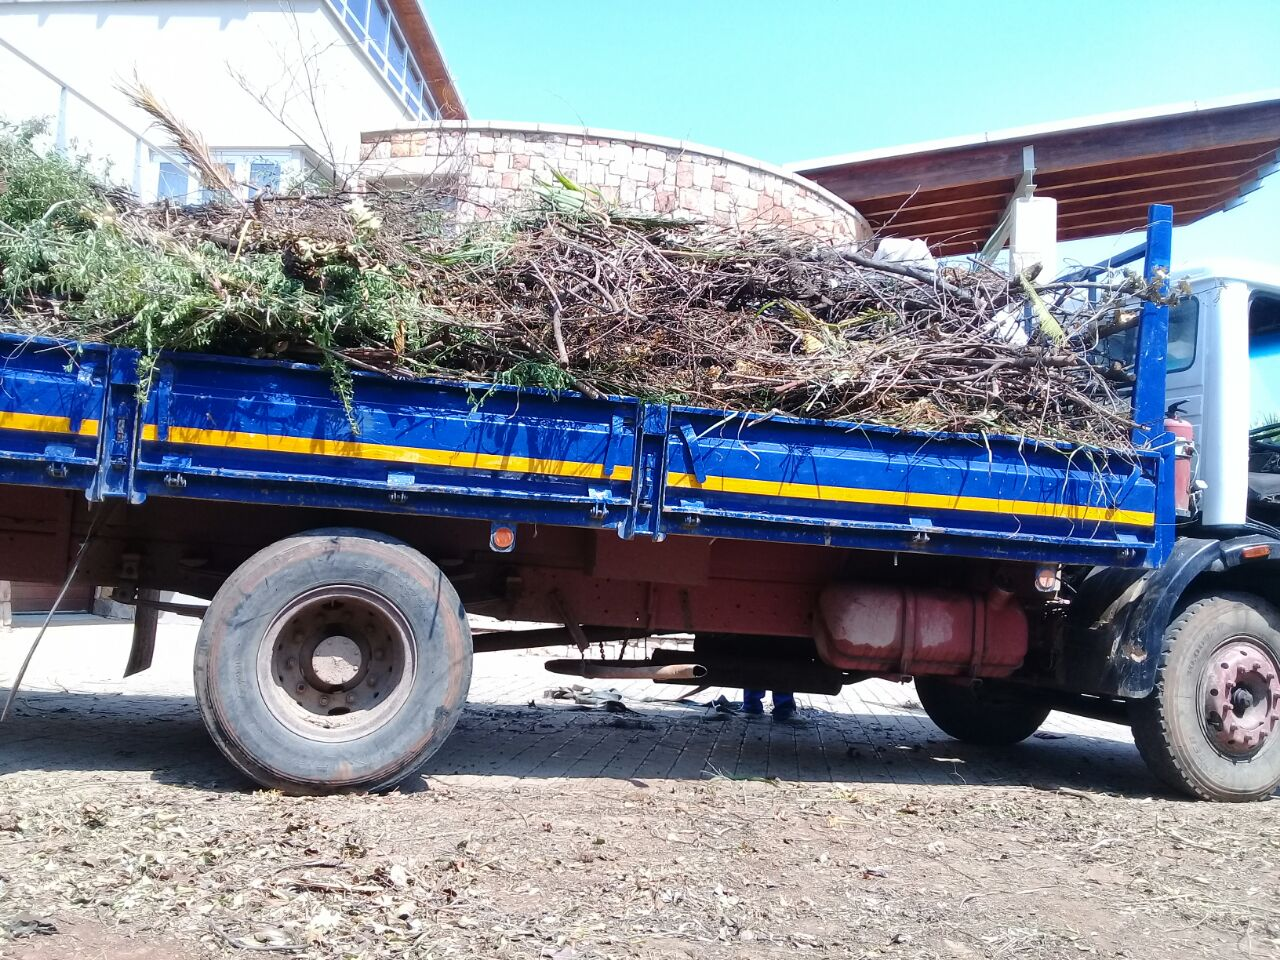 Rubble Removals Jhb - Best prices in Jhb & legal dumping only!